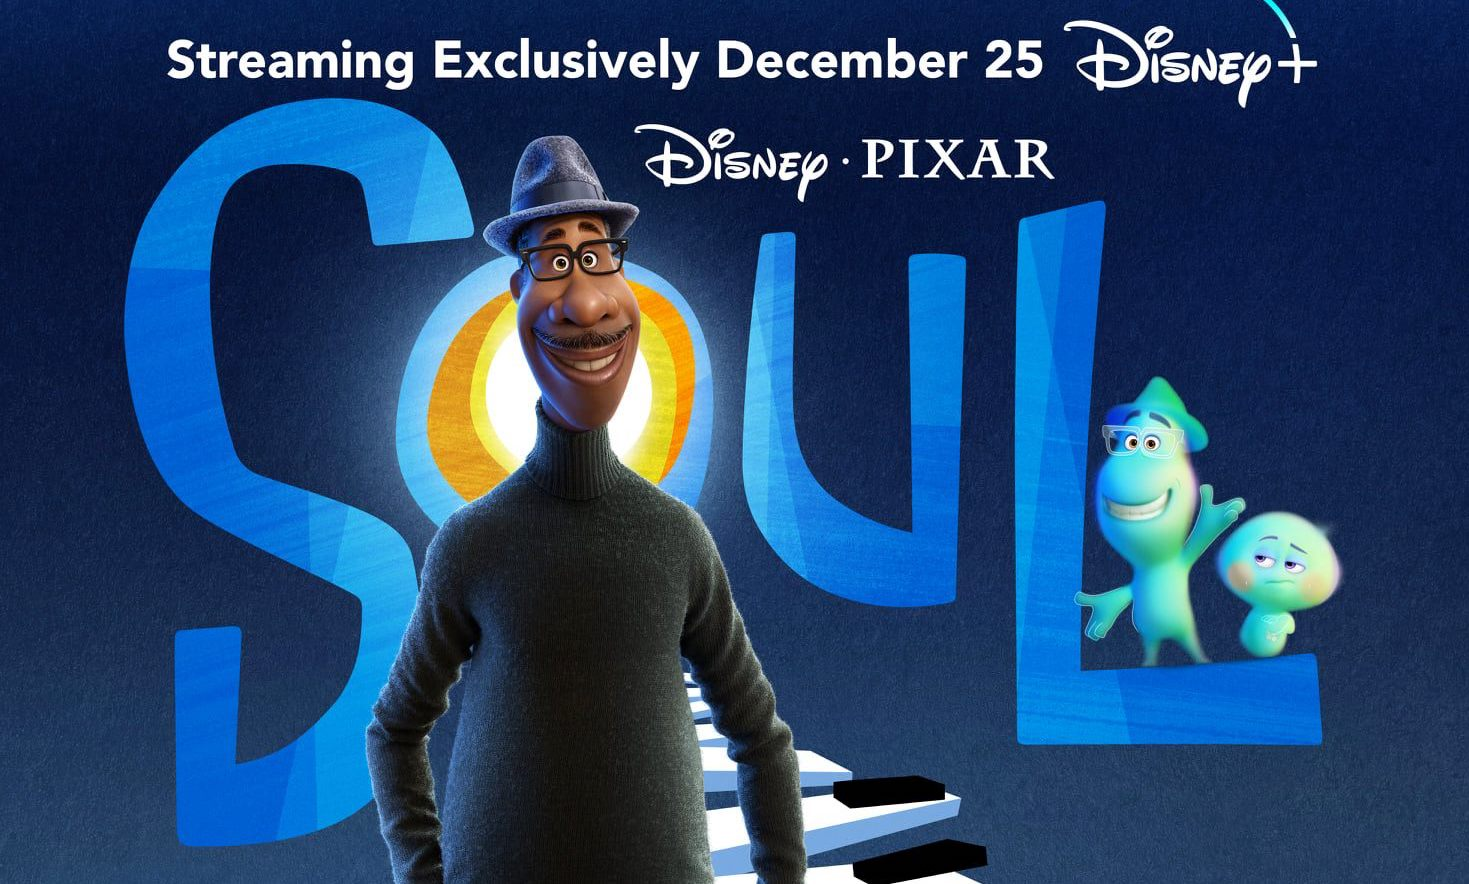 Pixar S Soul Moves Release Date To December 25 Streaming Exclusively On Disney Pixar Post